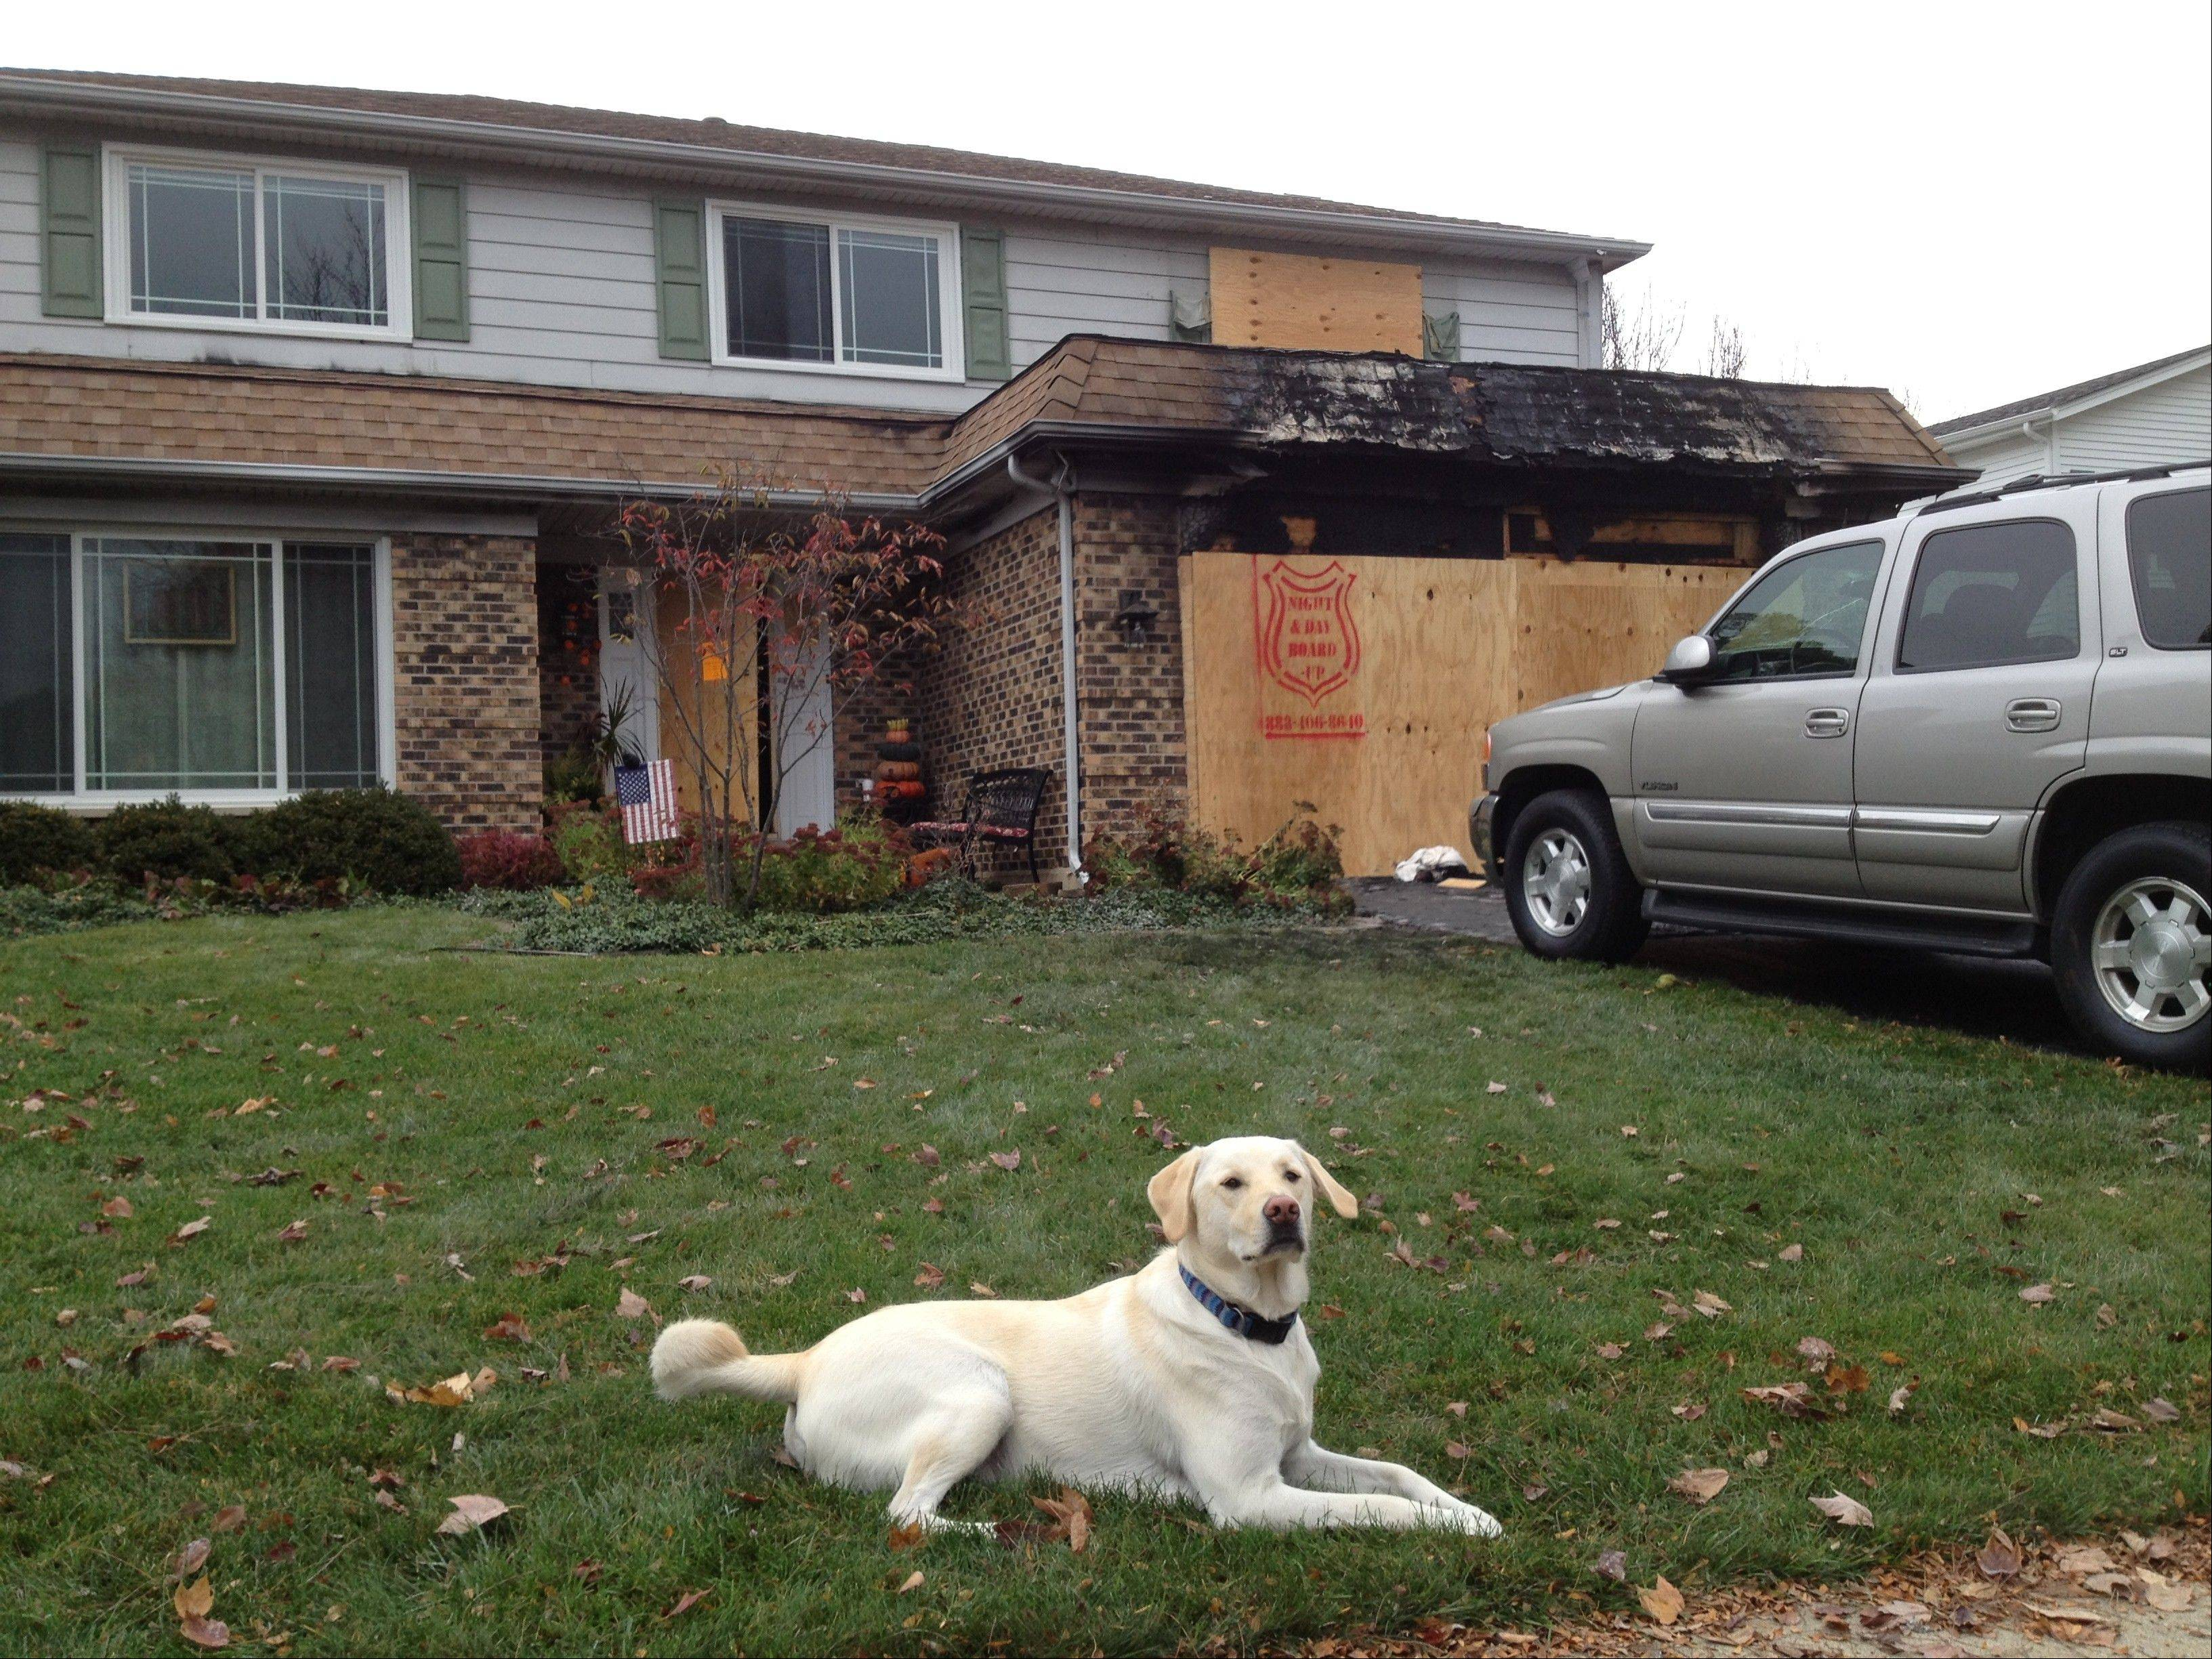 Bo rests in front of the Wacker family's fire-damaged house on Evergreen Court in Palatine Monday morning, only hours after waking everyone up with his barking to alert them of the blaze.